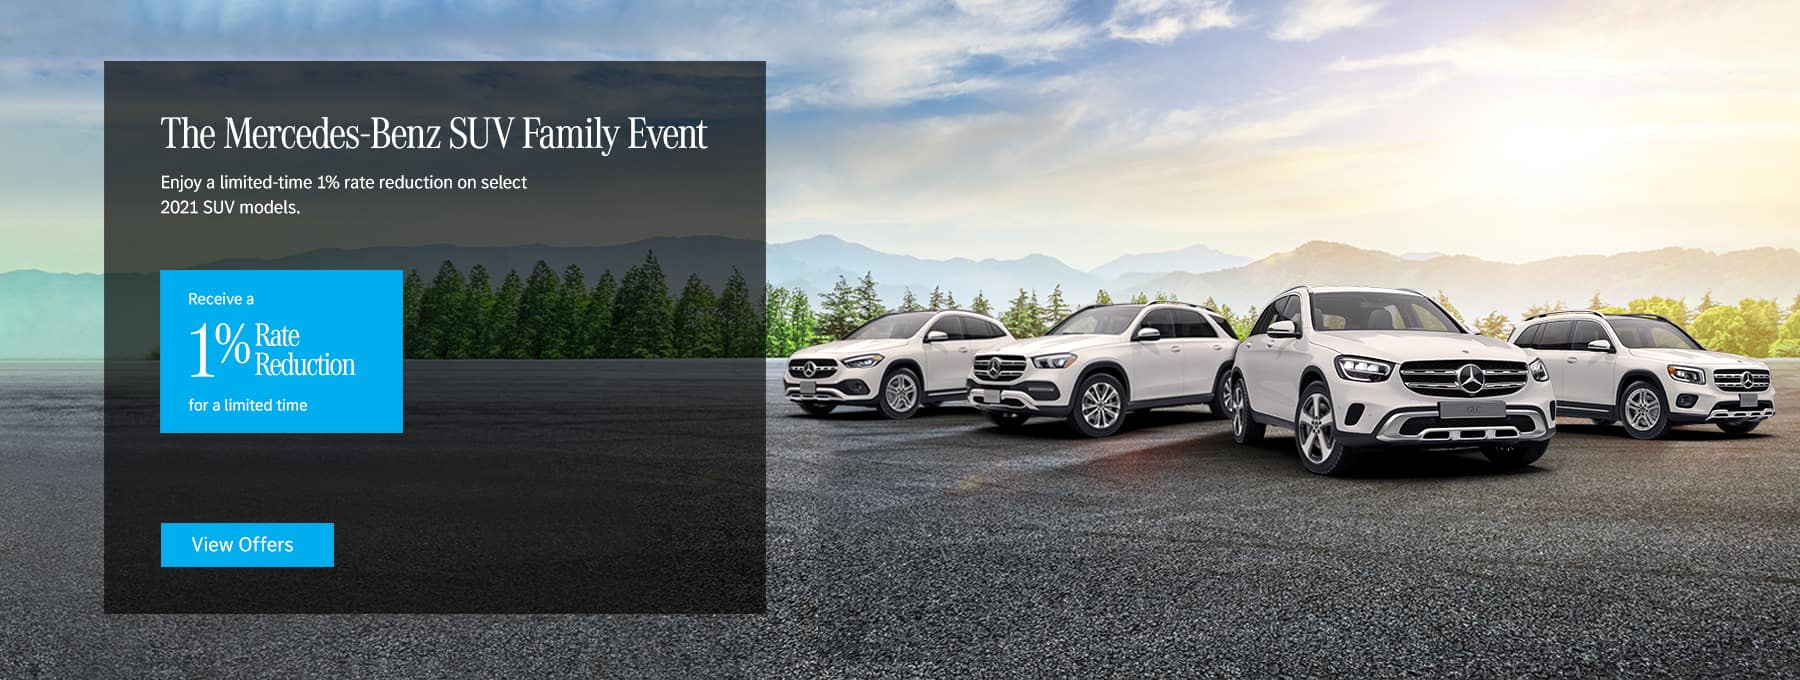 05-2021_SLIDER-DP_NC-SUV-Family-Event